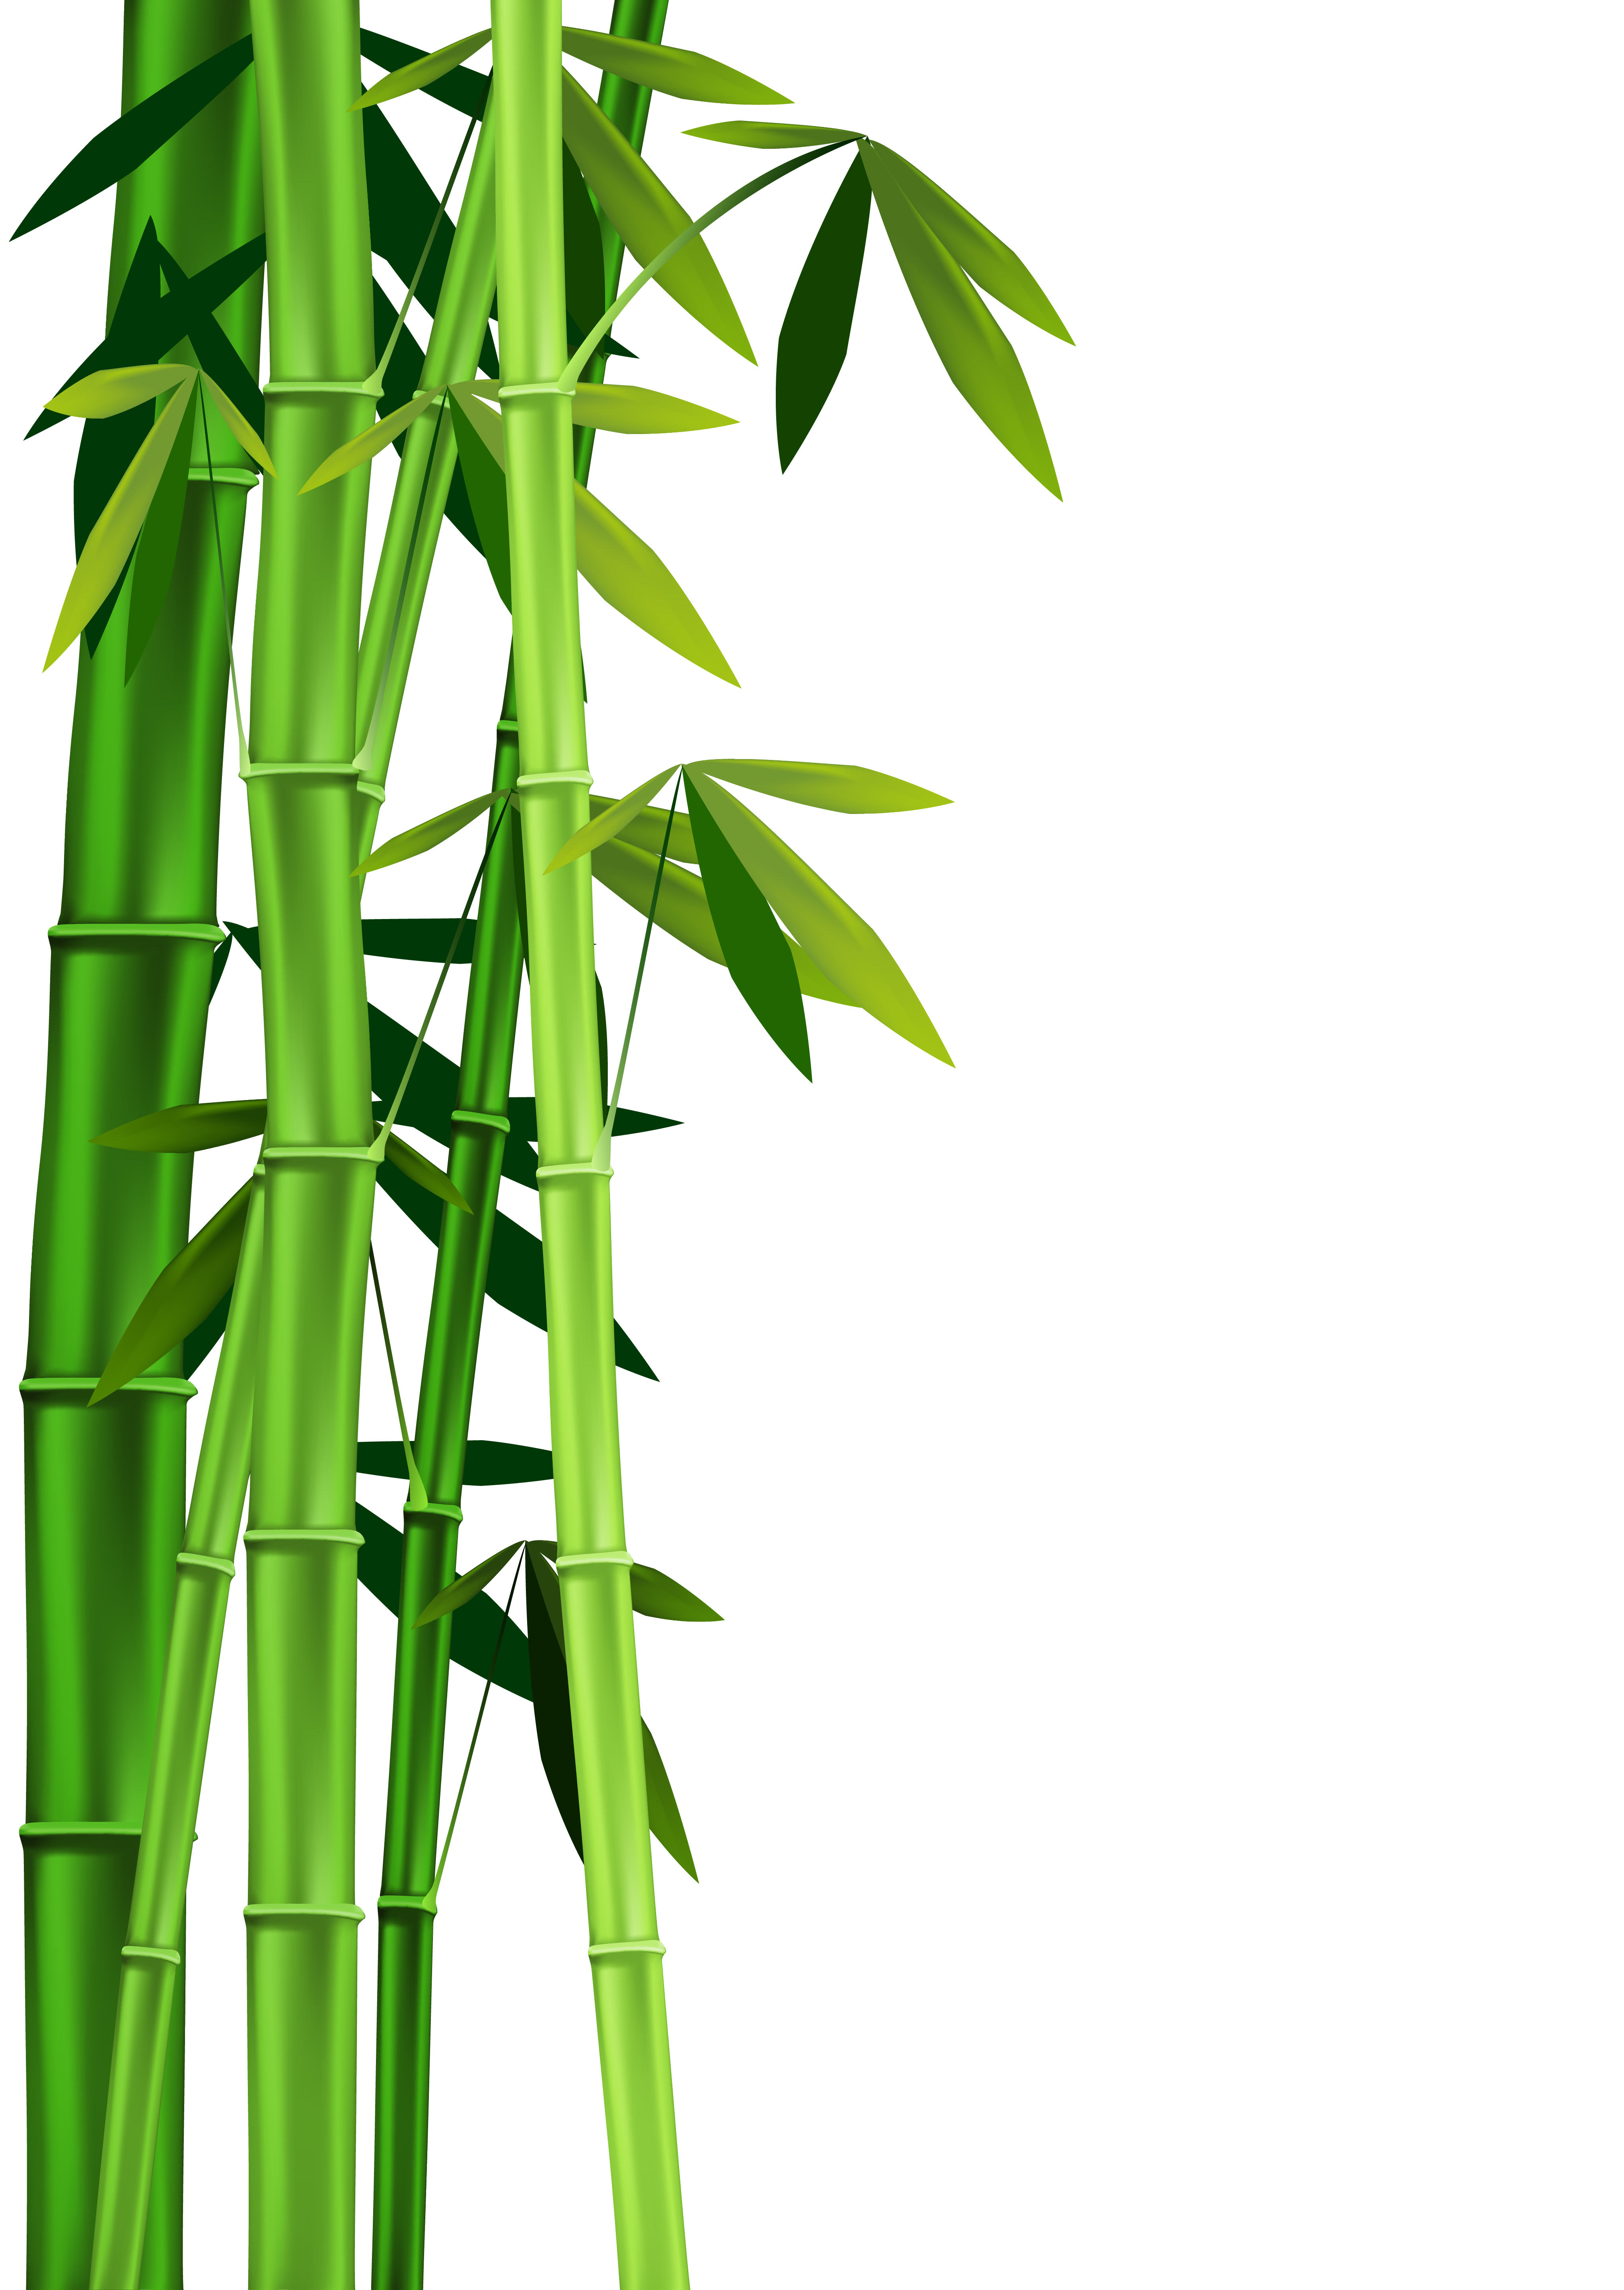 Chinese bamboo tree clipart image royalty free download Bamboo Tree Drawing | Free download best Bamboo Tree Drawing on ... image royalty free download